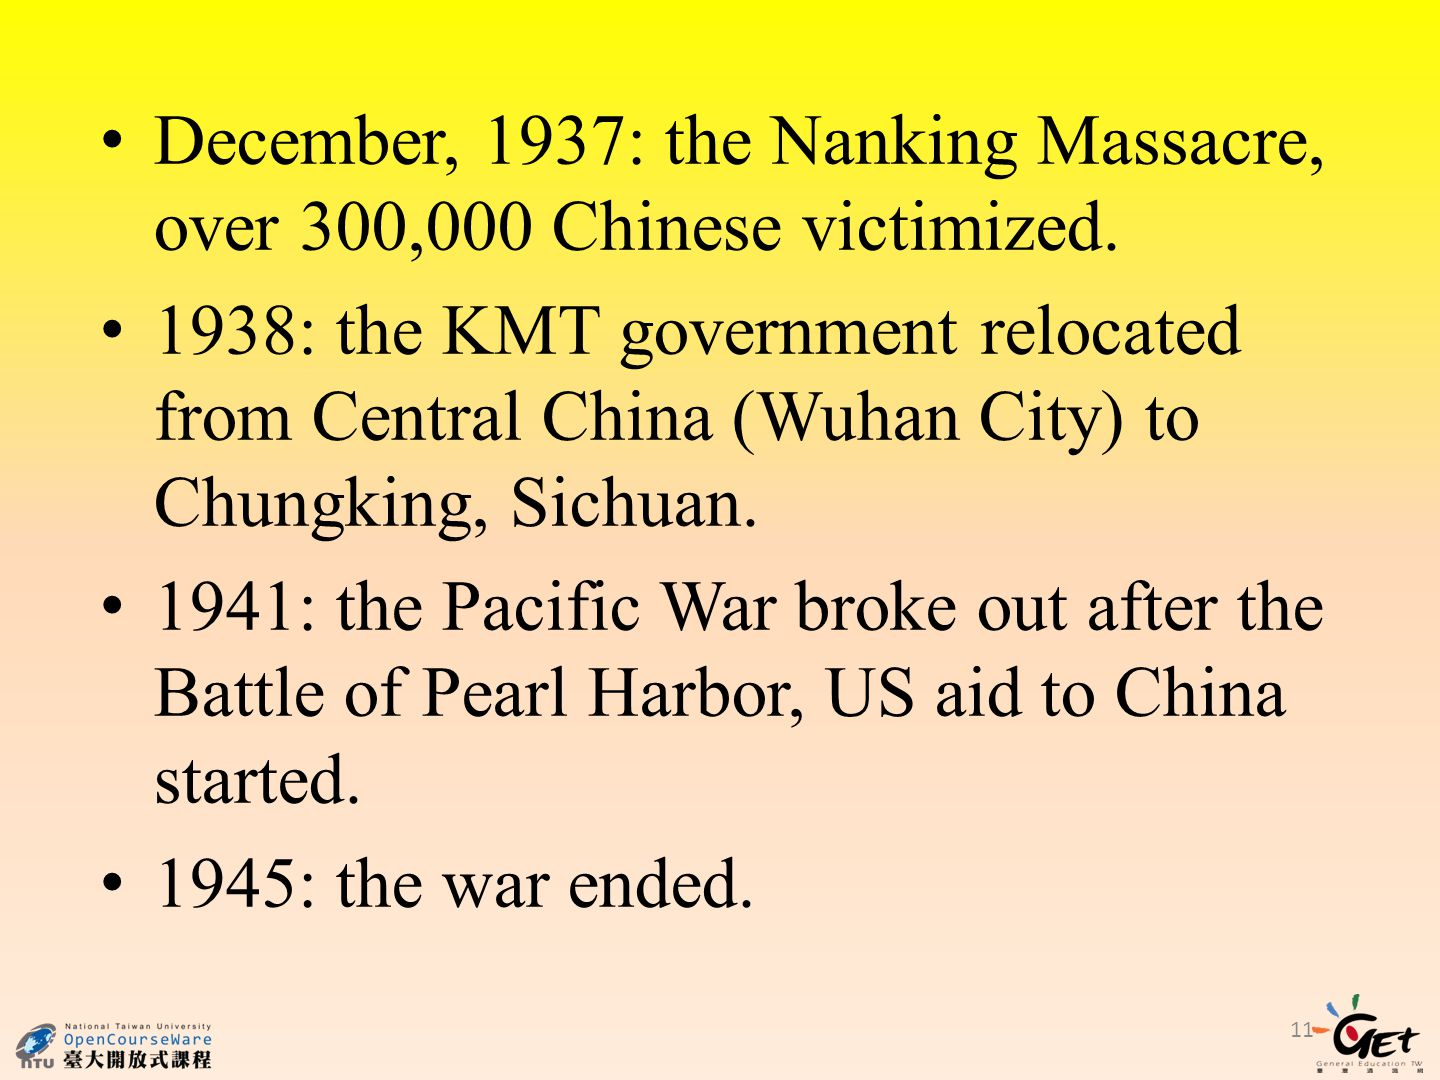 December, 1937: the Nanking Massacre, over 300,000 Chinese victimized.